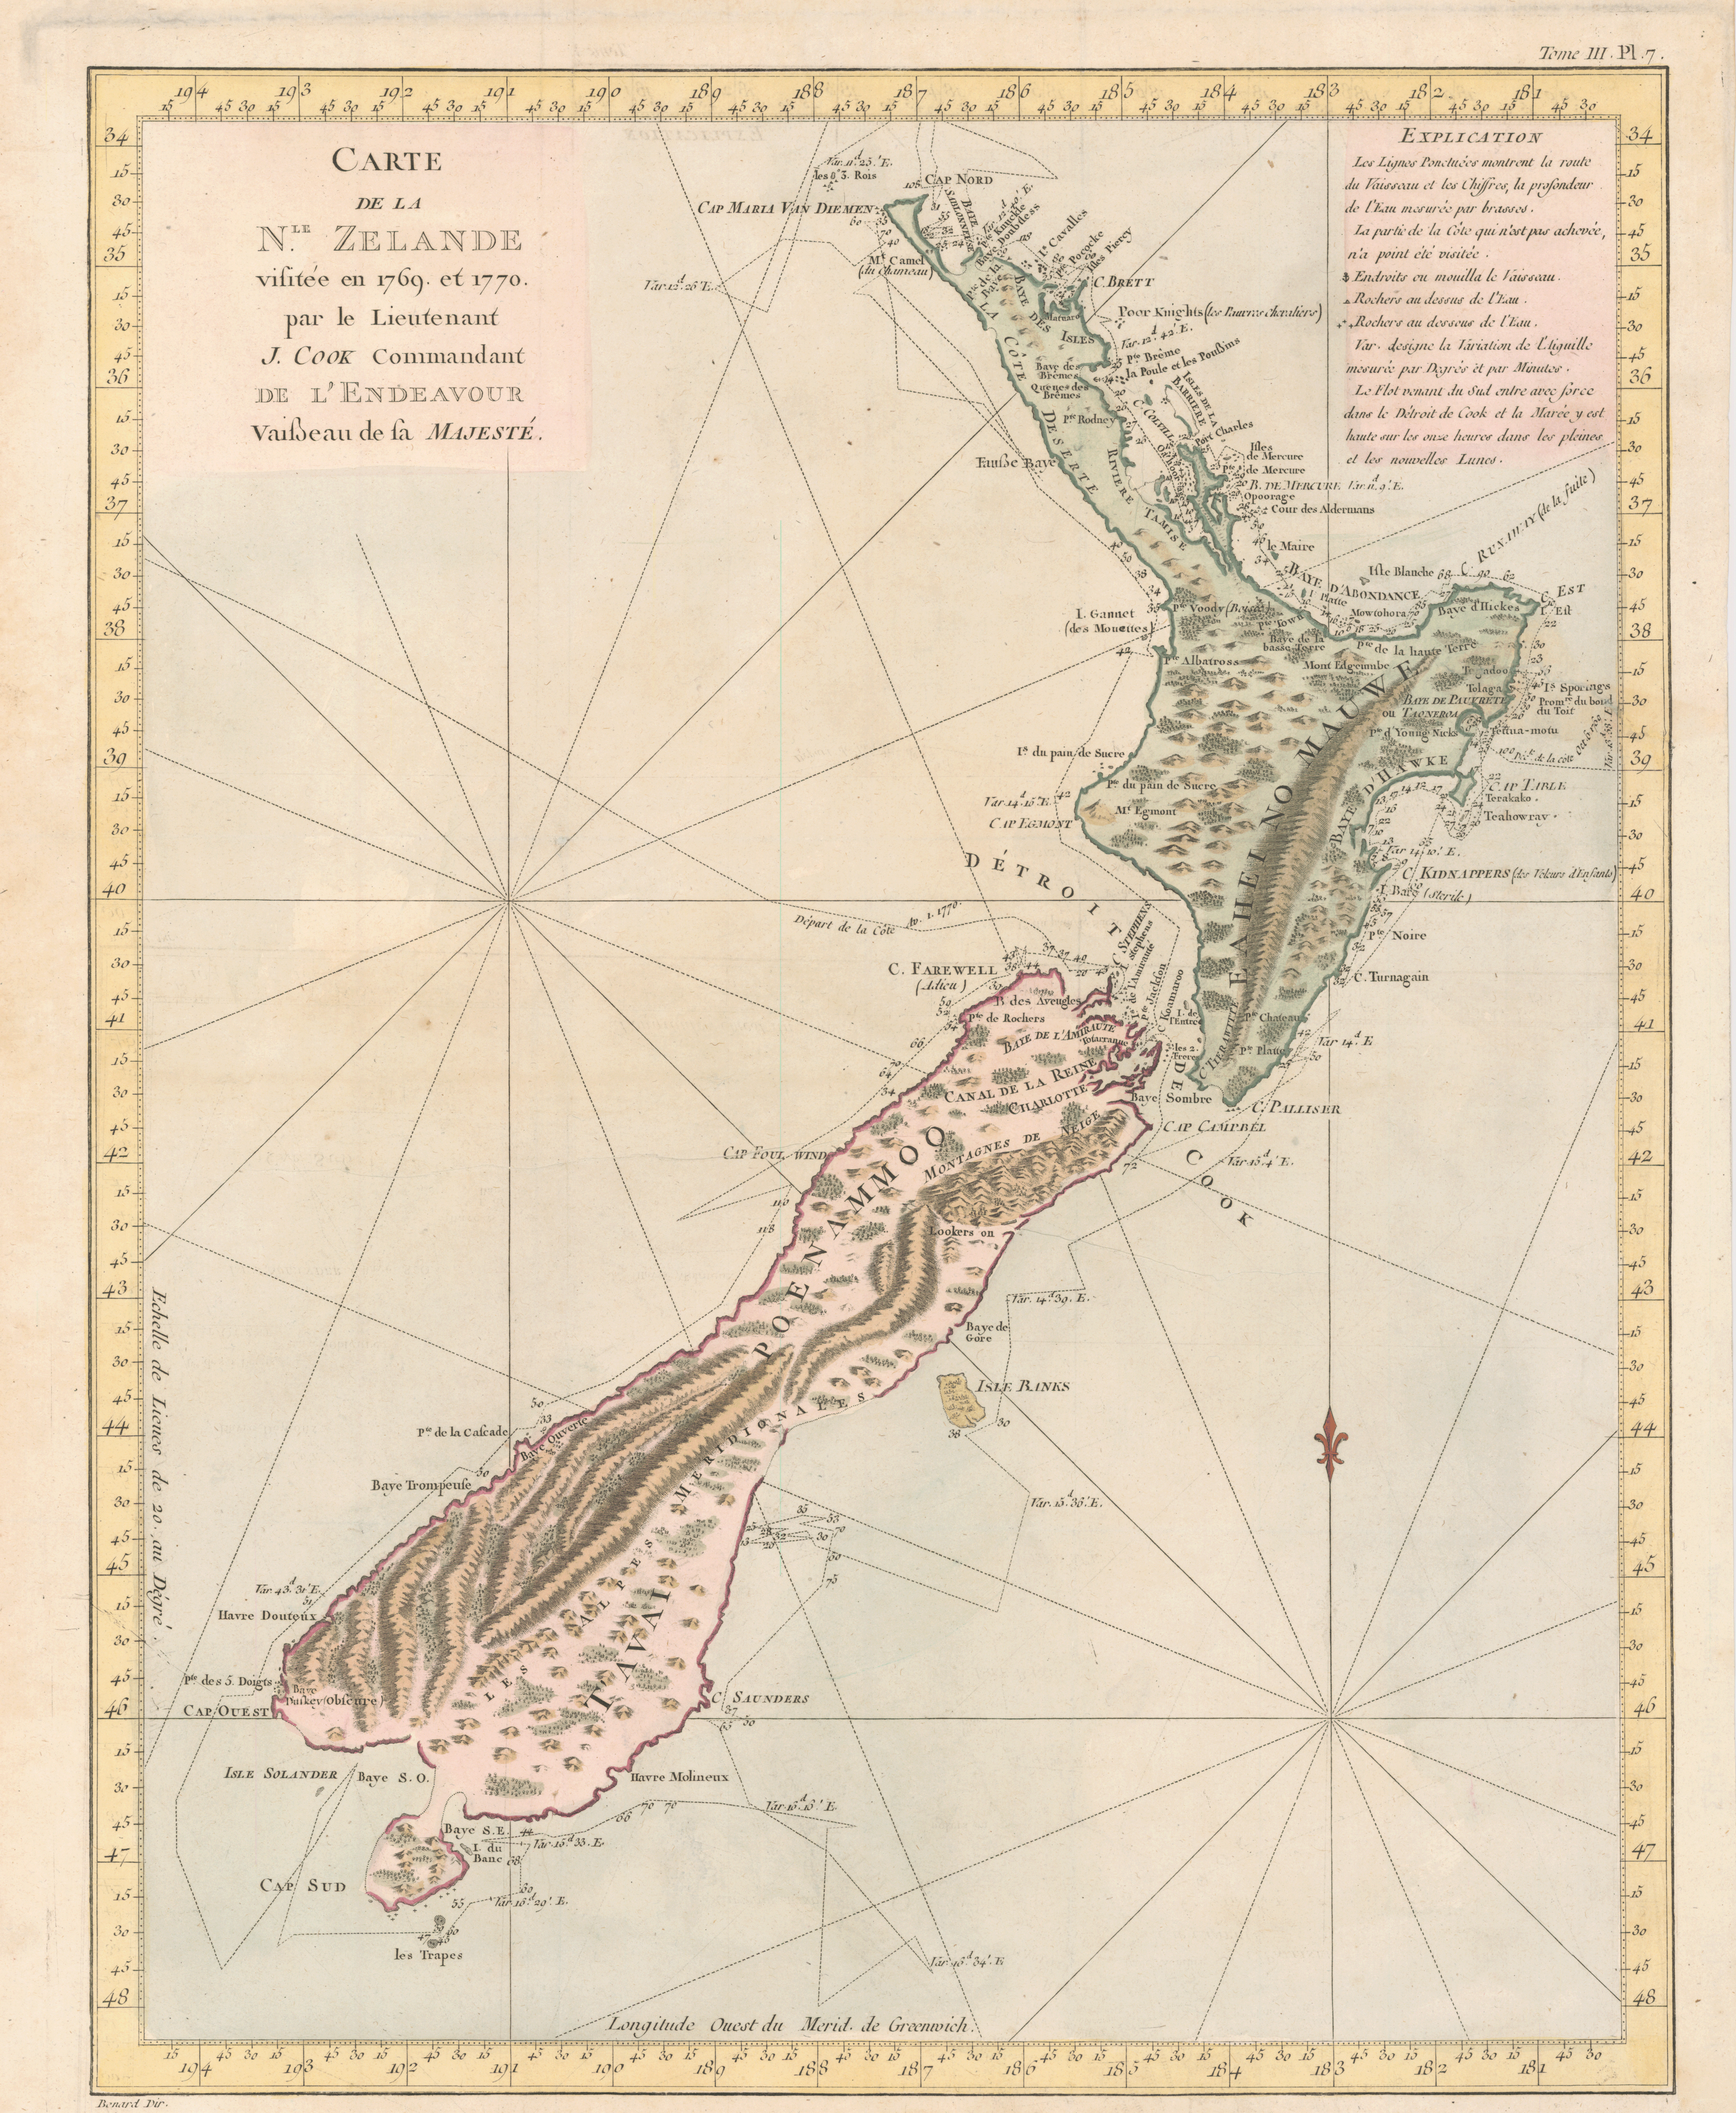 French copy of Cook's foundation map of New Zealand, showing the track of the Endeavour around both islands, from October 6, 1769, to April 1, 1770. Copperplate map, with added color, 46 × 36 cm. From John Hawkesworth's Relation des voyages entrepris par ordre de Sa Majesté Britannique . . . (Paris, 1774).